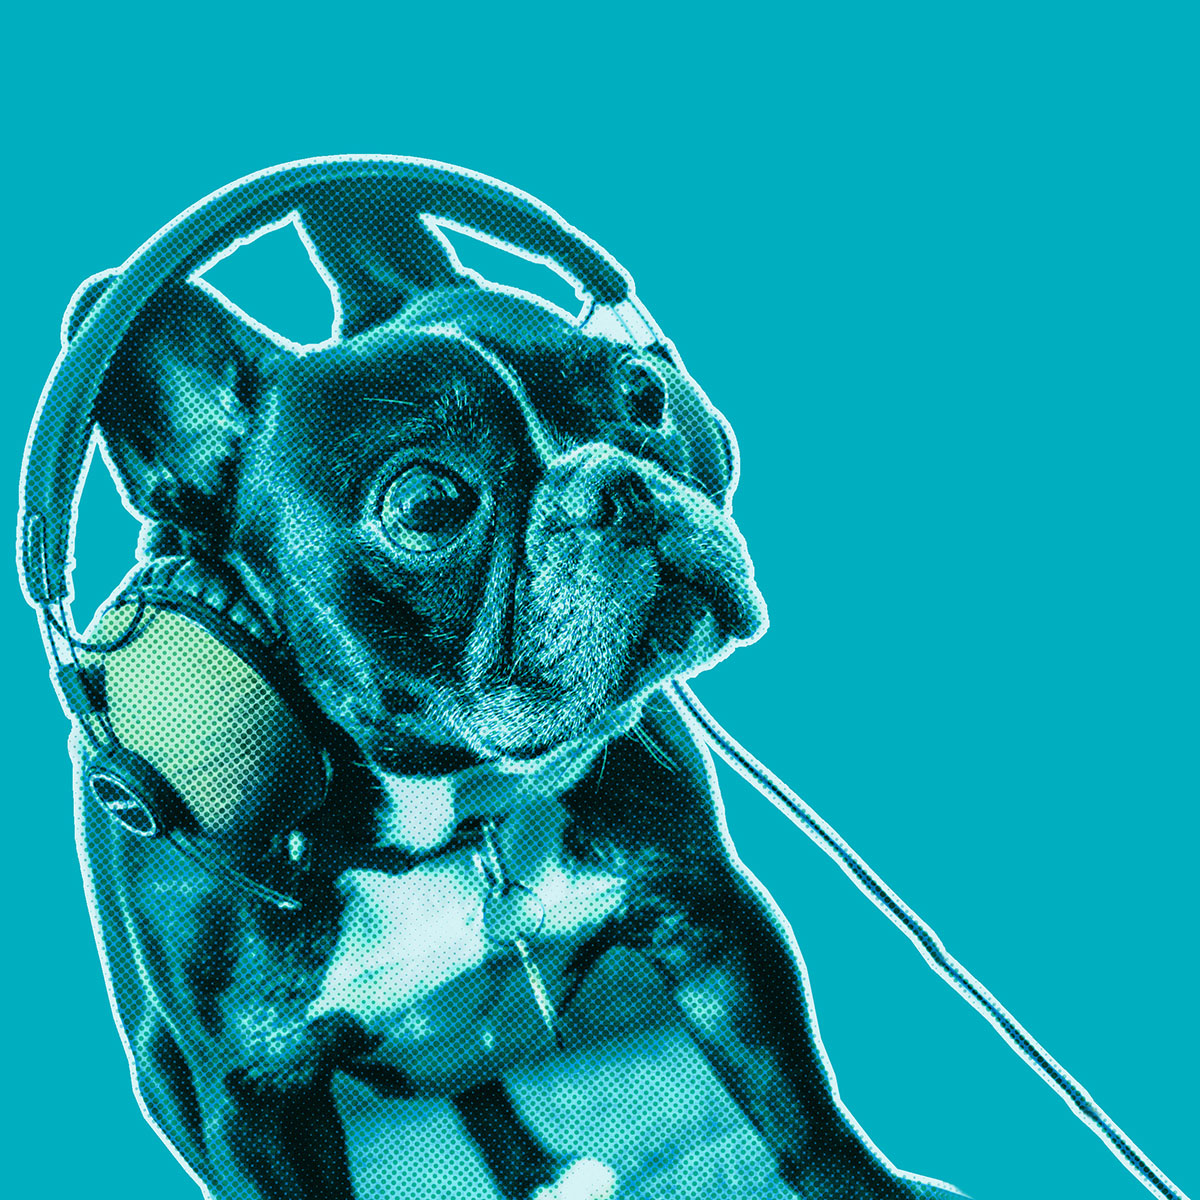 Turquoise-filtered picture of a French Bulldog wearing headphones